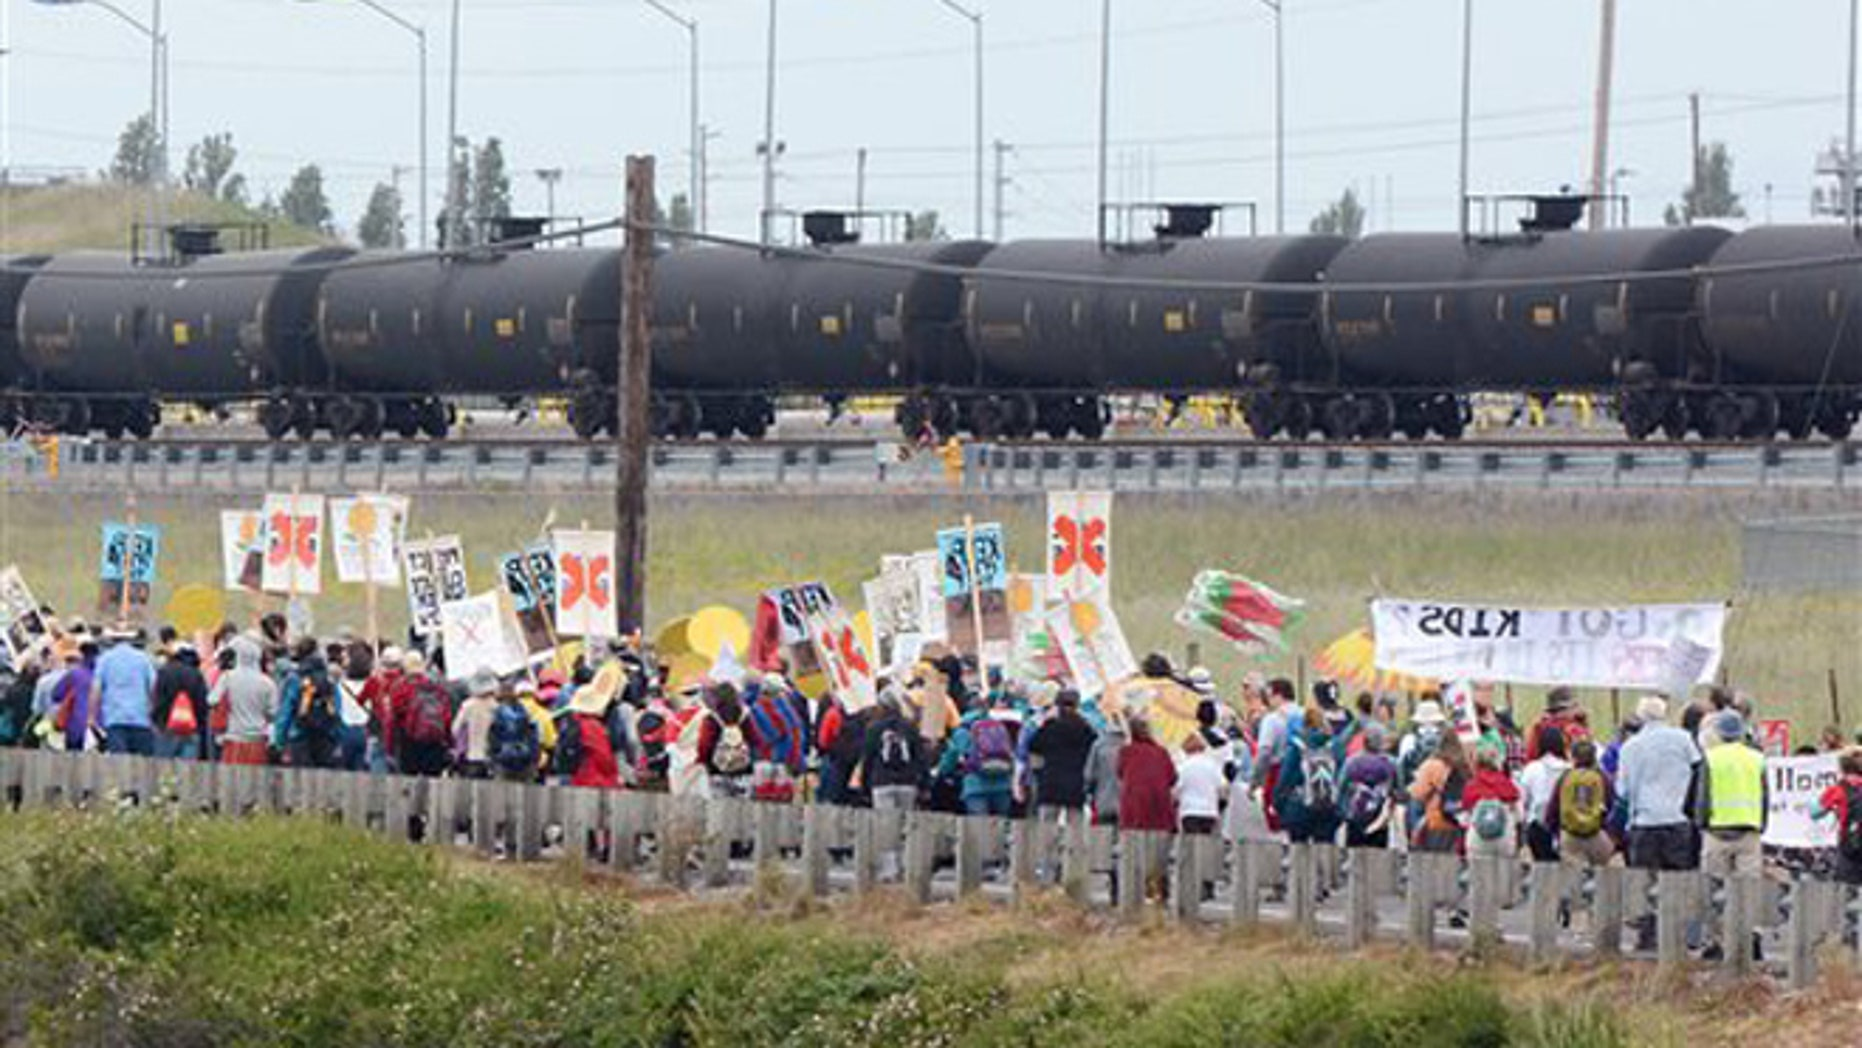 """Anti-oil protestors walk past the Tesoro refinery rail yard in Anacortes, Wash., on Saturday, May 14, 2016. The protests are part of a series of global actions calling on people to """"break free"""" from dependence on fossil fuels. (Scott Terrell/Skagit Valley Herald via AP)"""